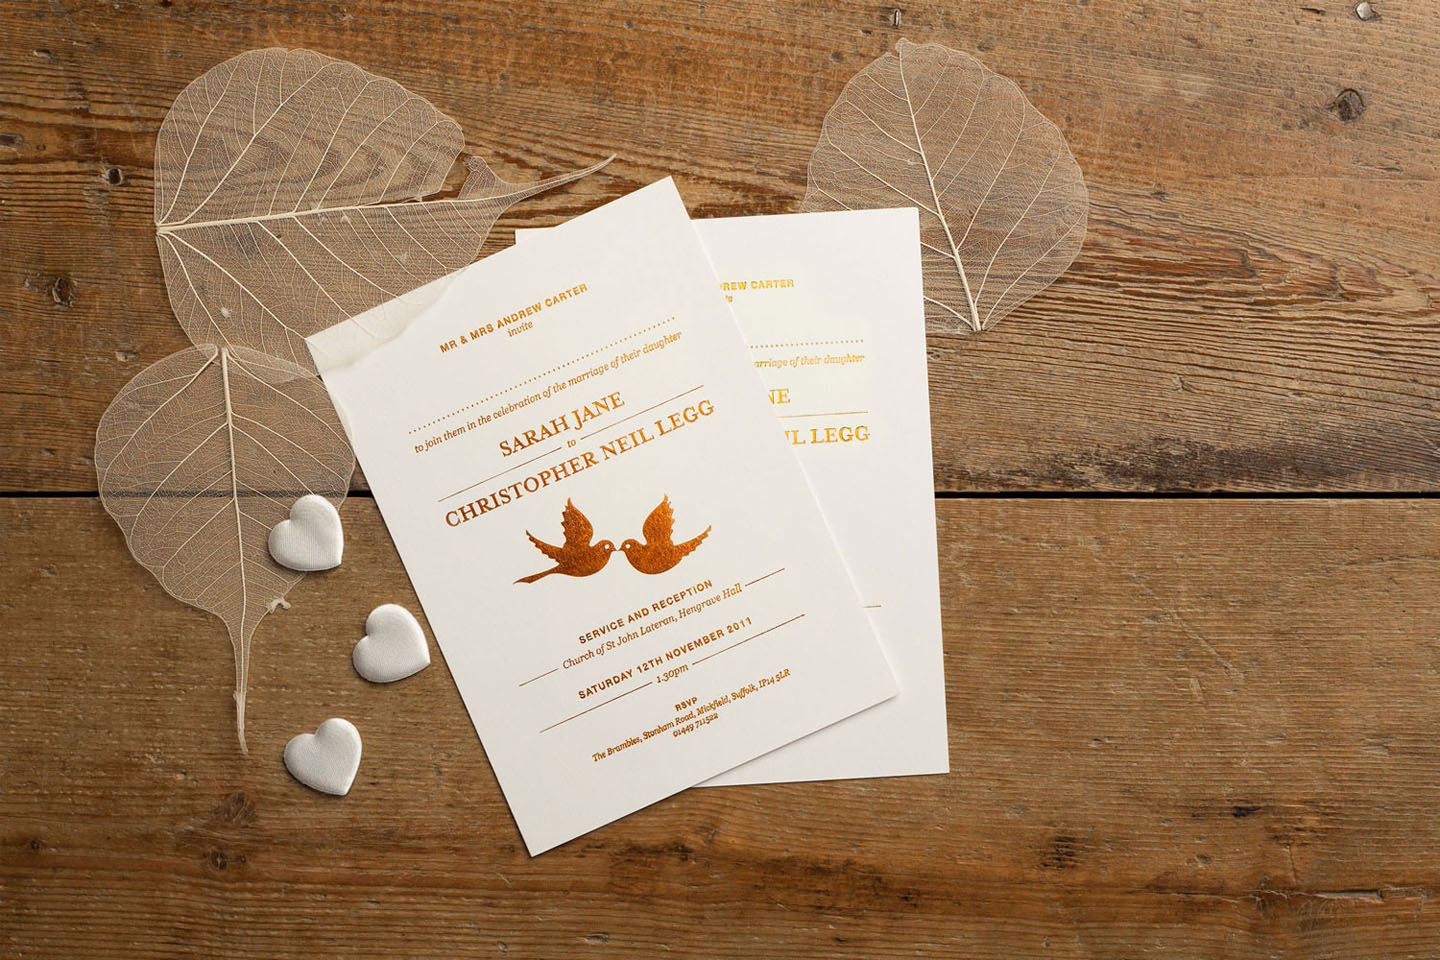 Copper Foil Wedding Invitations - Woodland Wedding Invitation with Love Birds - Autumn Wedding Ideas - Luxury Wedding Stationery by the Foil Invite Company